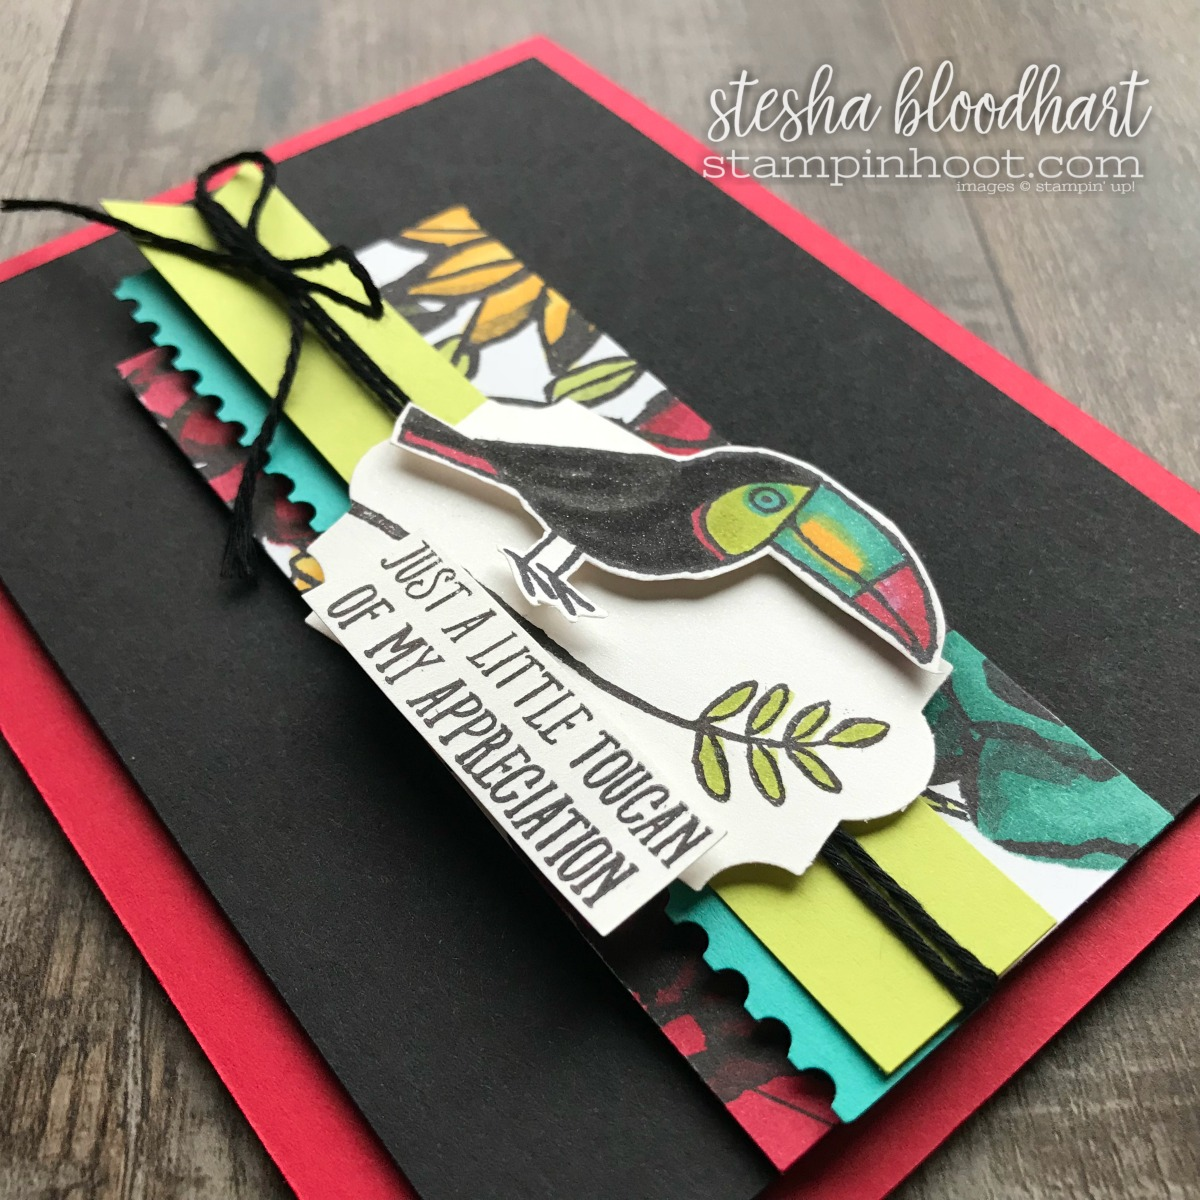 Bird Banter Stamp Set from the Stampin' Up! 2018 Occasions Catalog for GDP122 Sketch Challenge by Stesha Bloodhart, Stampin' Hoot! #steshabloodhart #stampinhoot #gdp122